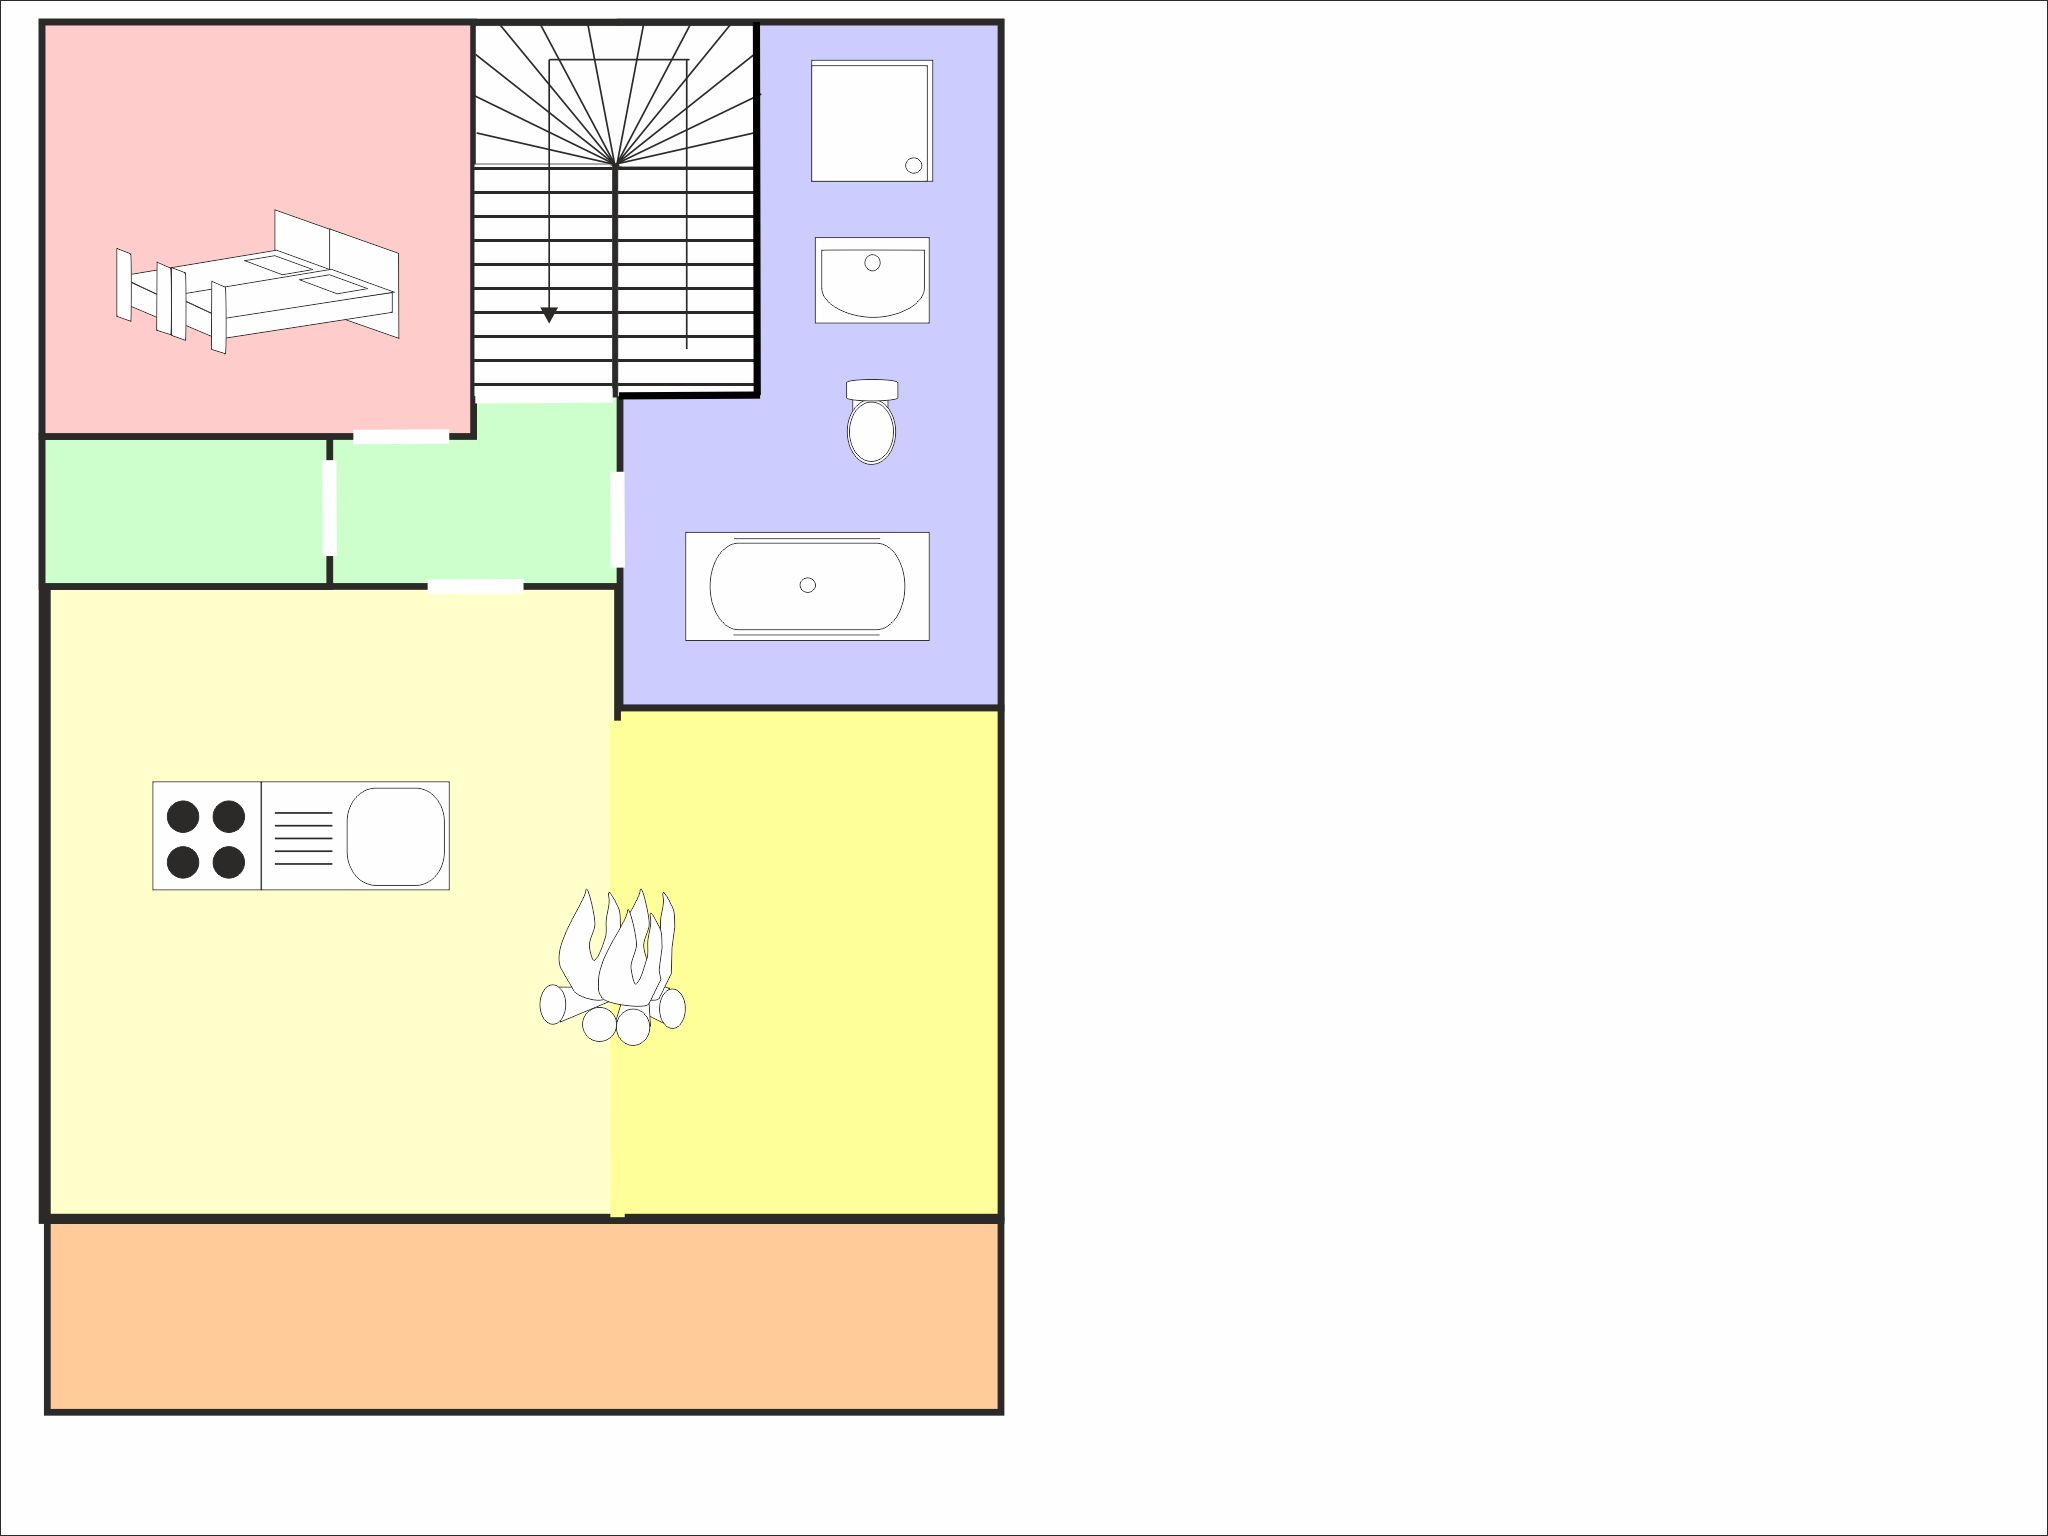 Sonnenchalet Leutasch - floor plan - level 2